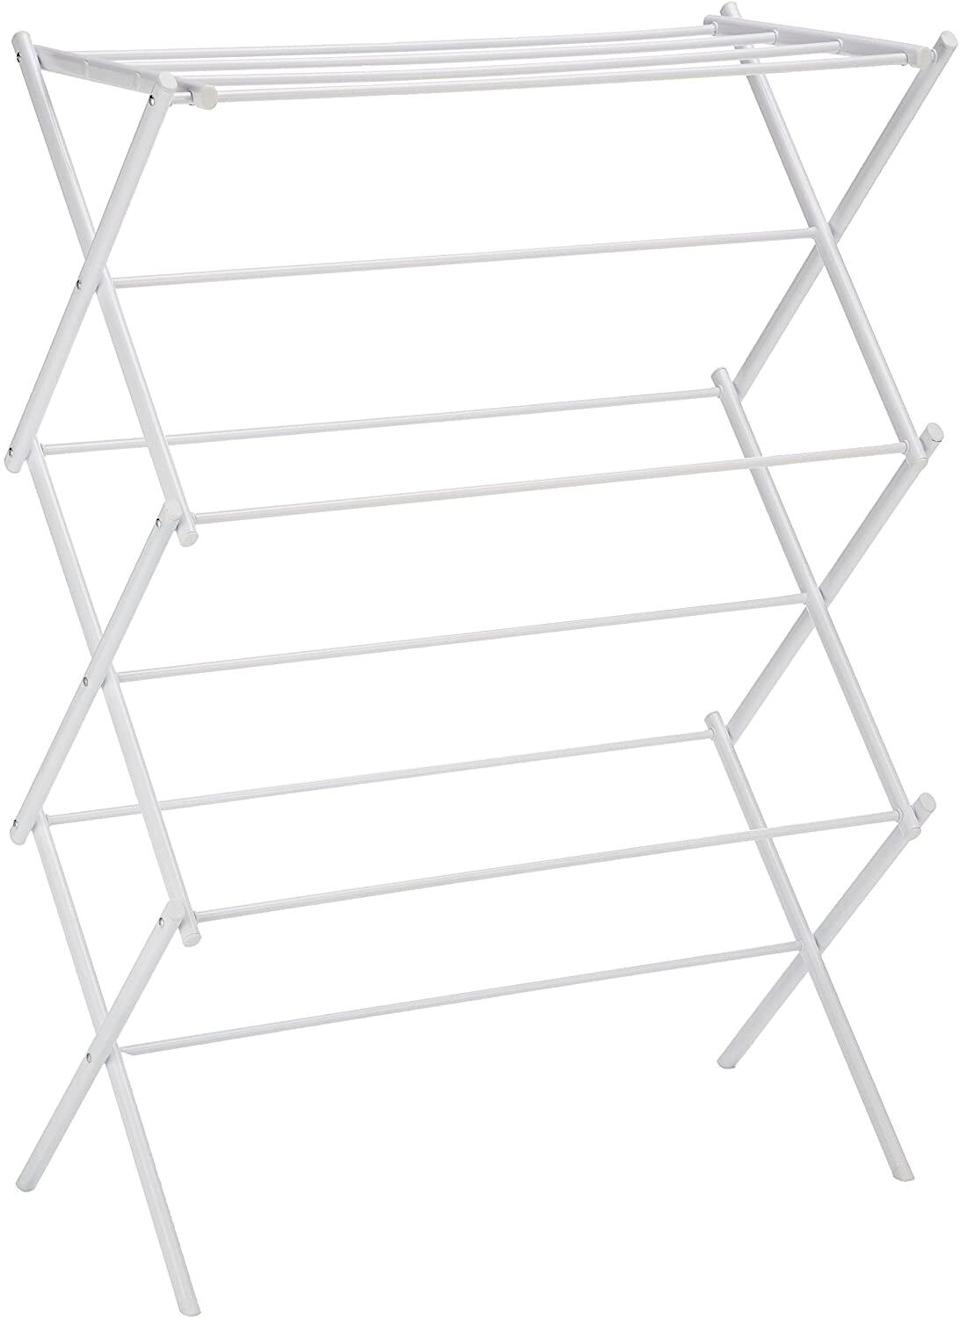 Foldable Clothes Drying Rack from Amazon